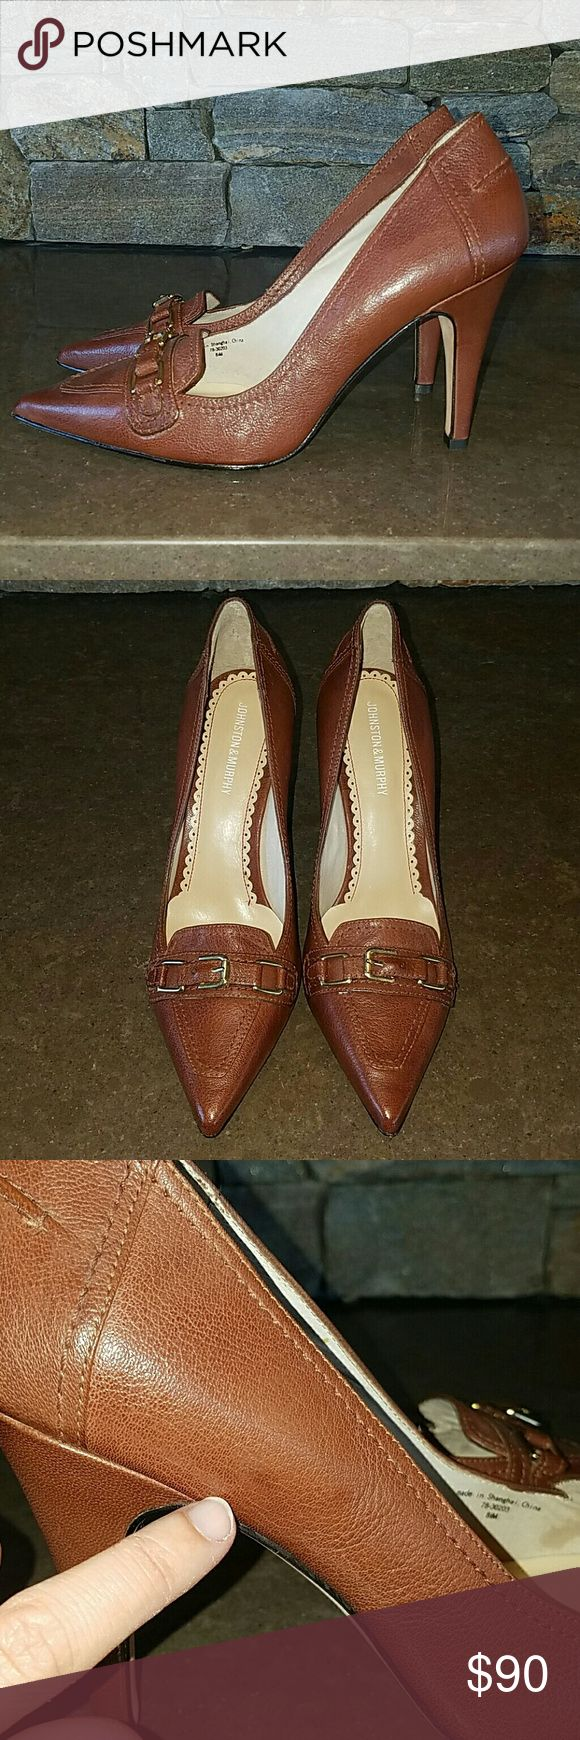 NWOB Johnston & Murphy heels pumps 8.5 brown Very nice Johnston & Murphy brown career heels size 8.5.  New without the box.  Textured leather with gold buckle detail.  Small dark mark on side and on back along with small indent on heel.  Seems like a simple imperfection. Johnston & Murphy Shoes Heels